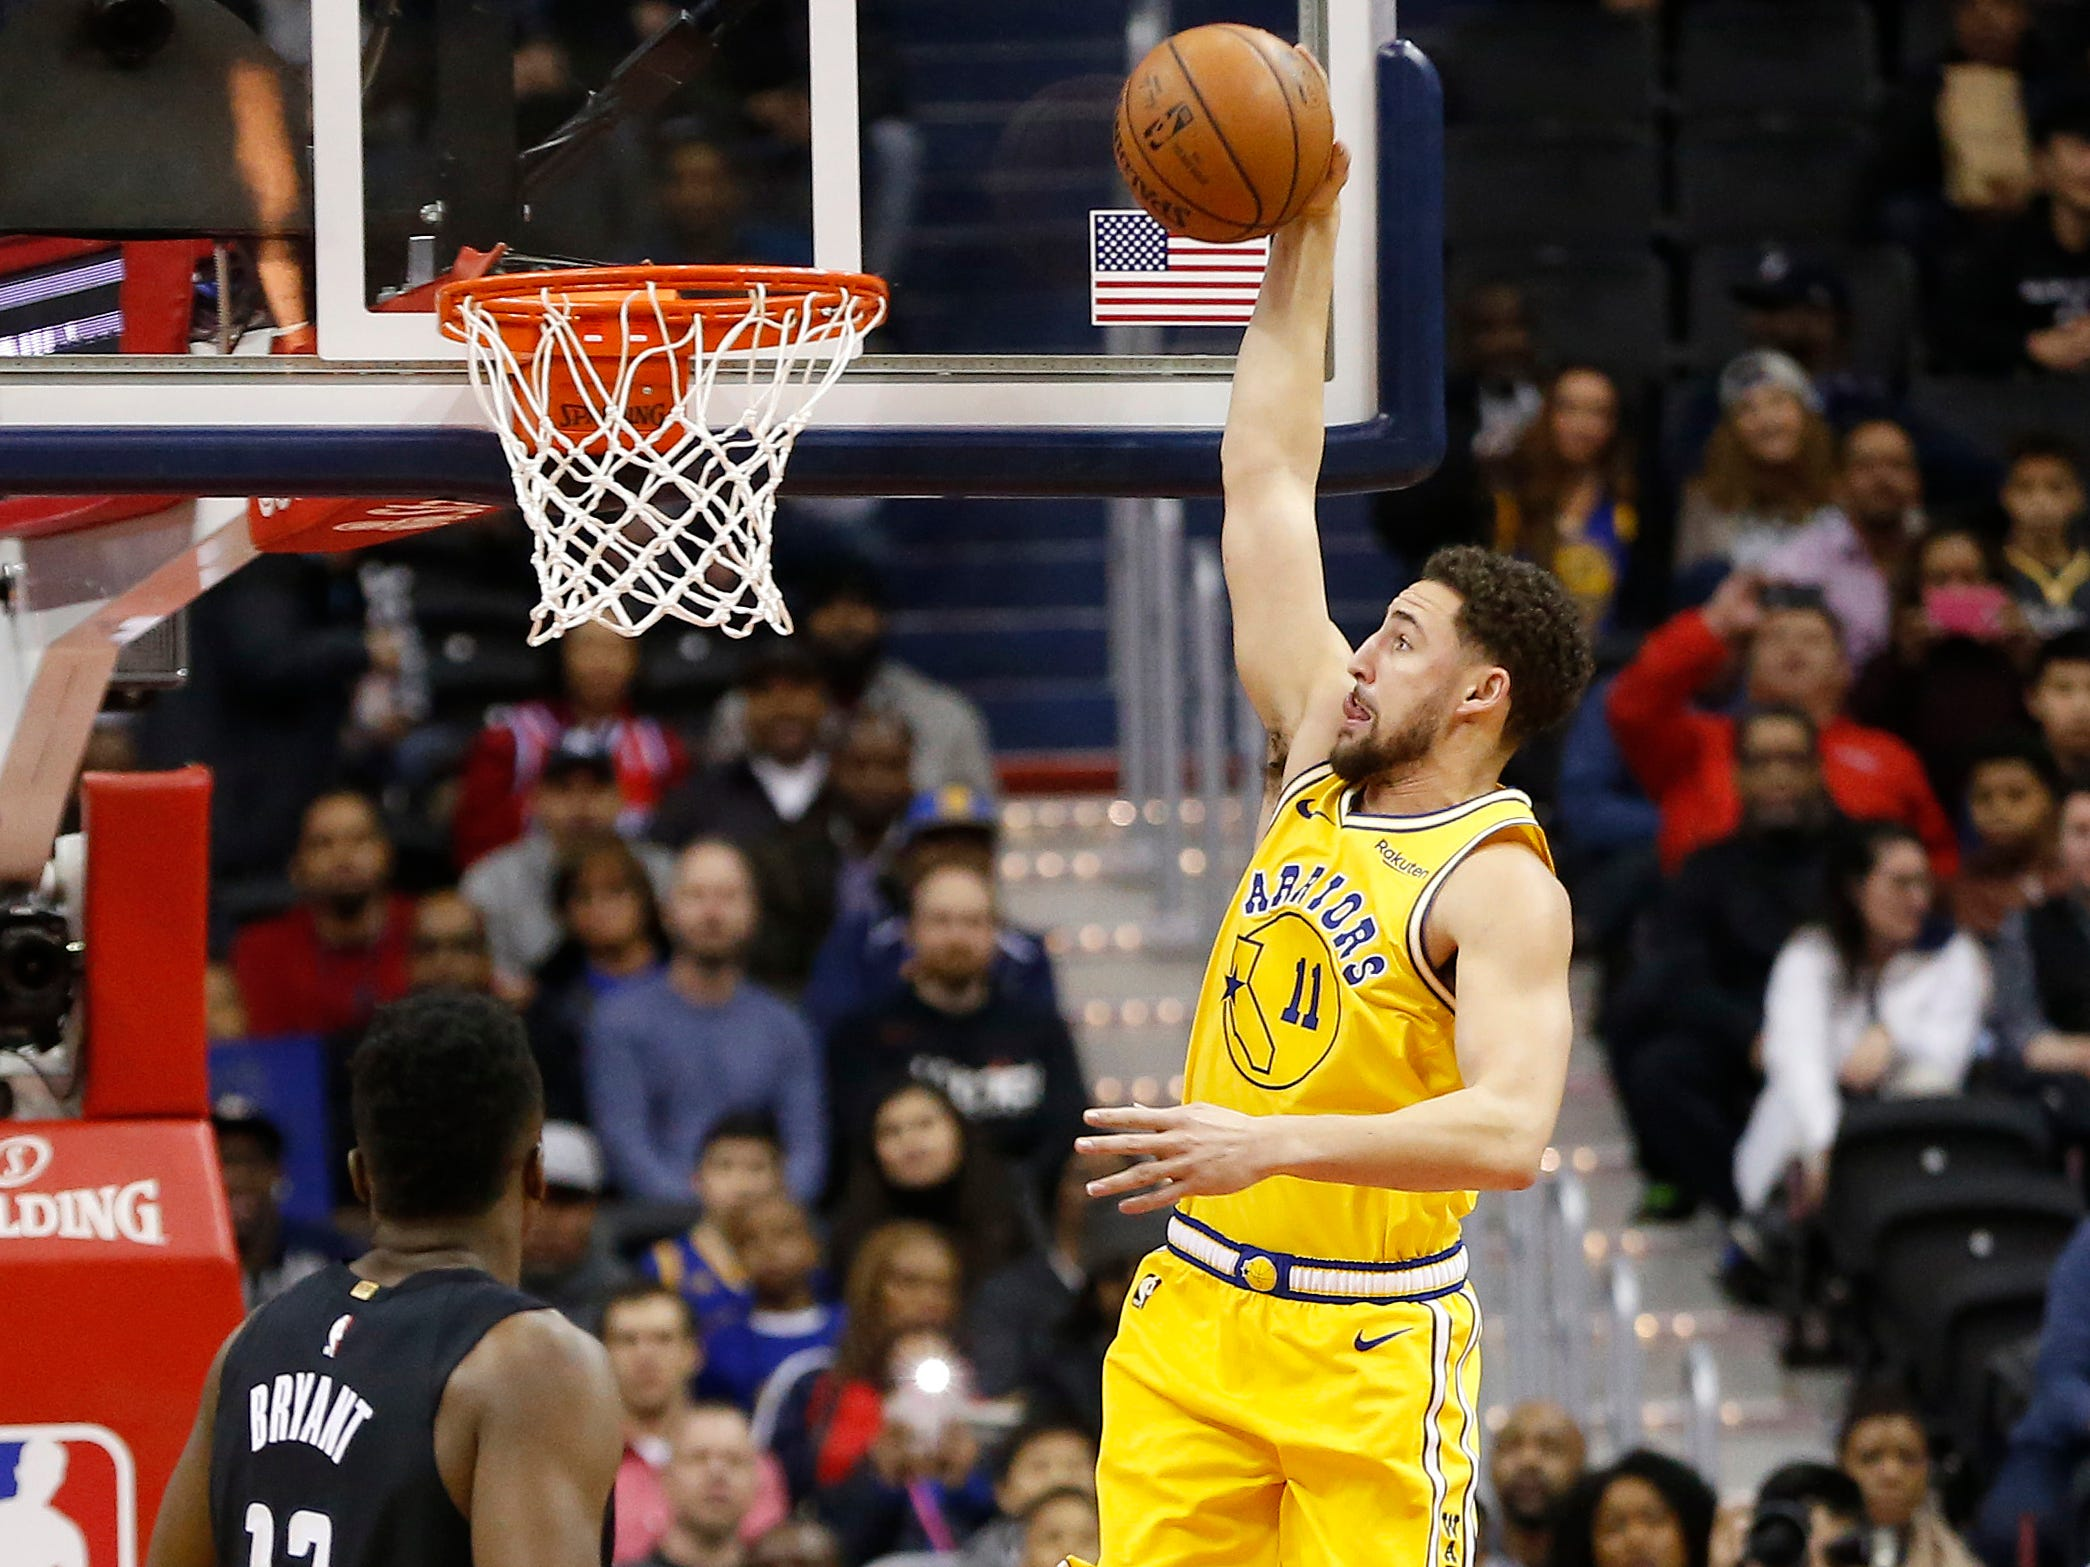 Jan. 24: Warriors guard Klay Thompson rises up for the one-handed flush during the first half against the Wizards in Washington.